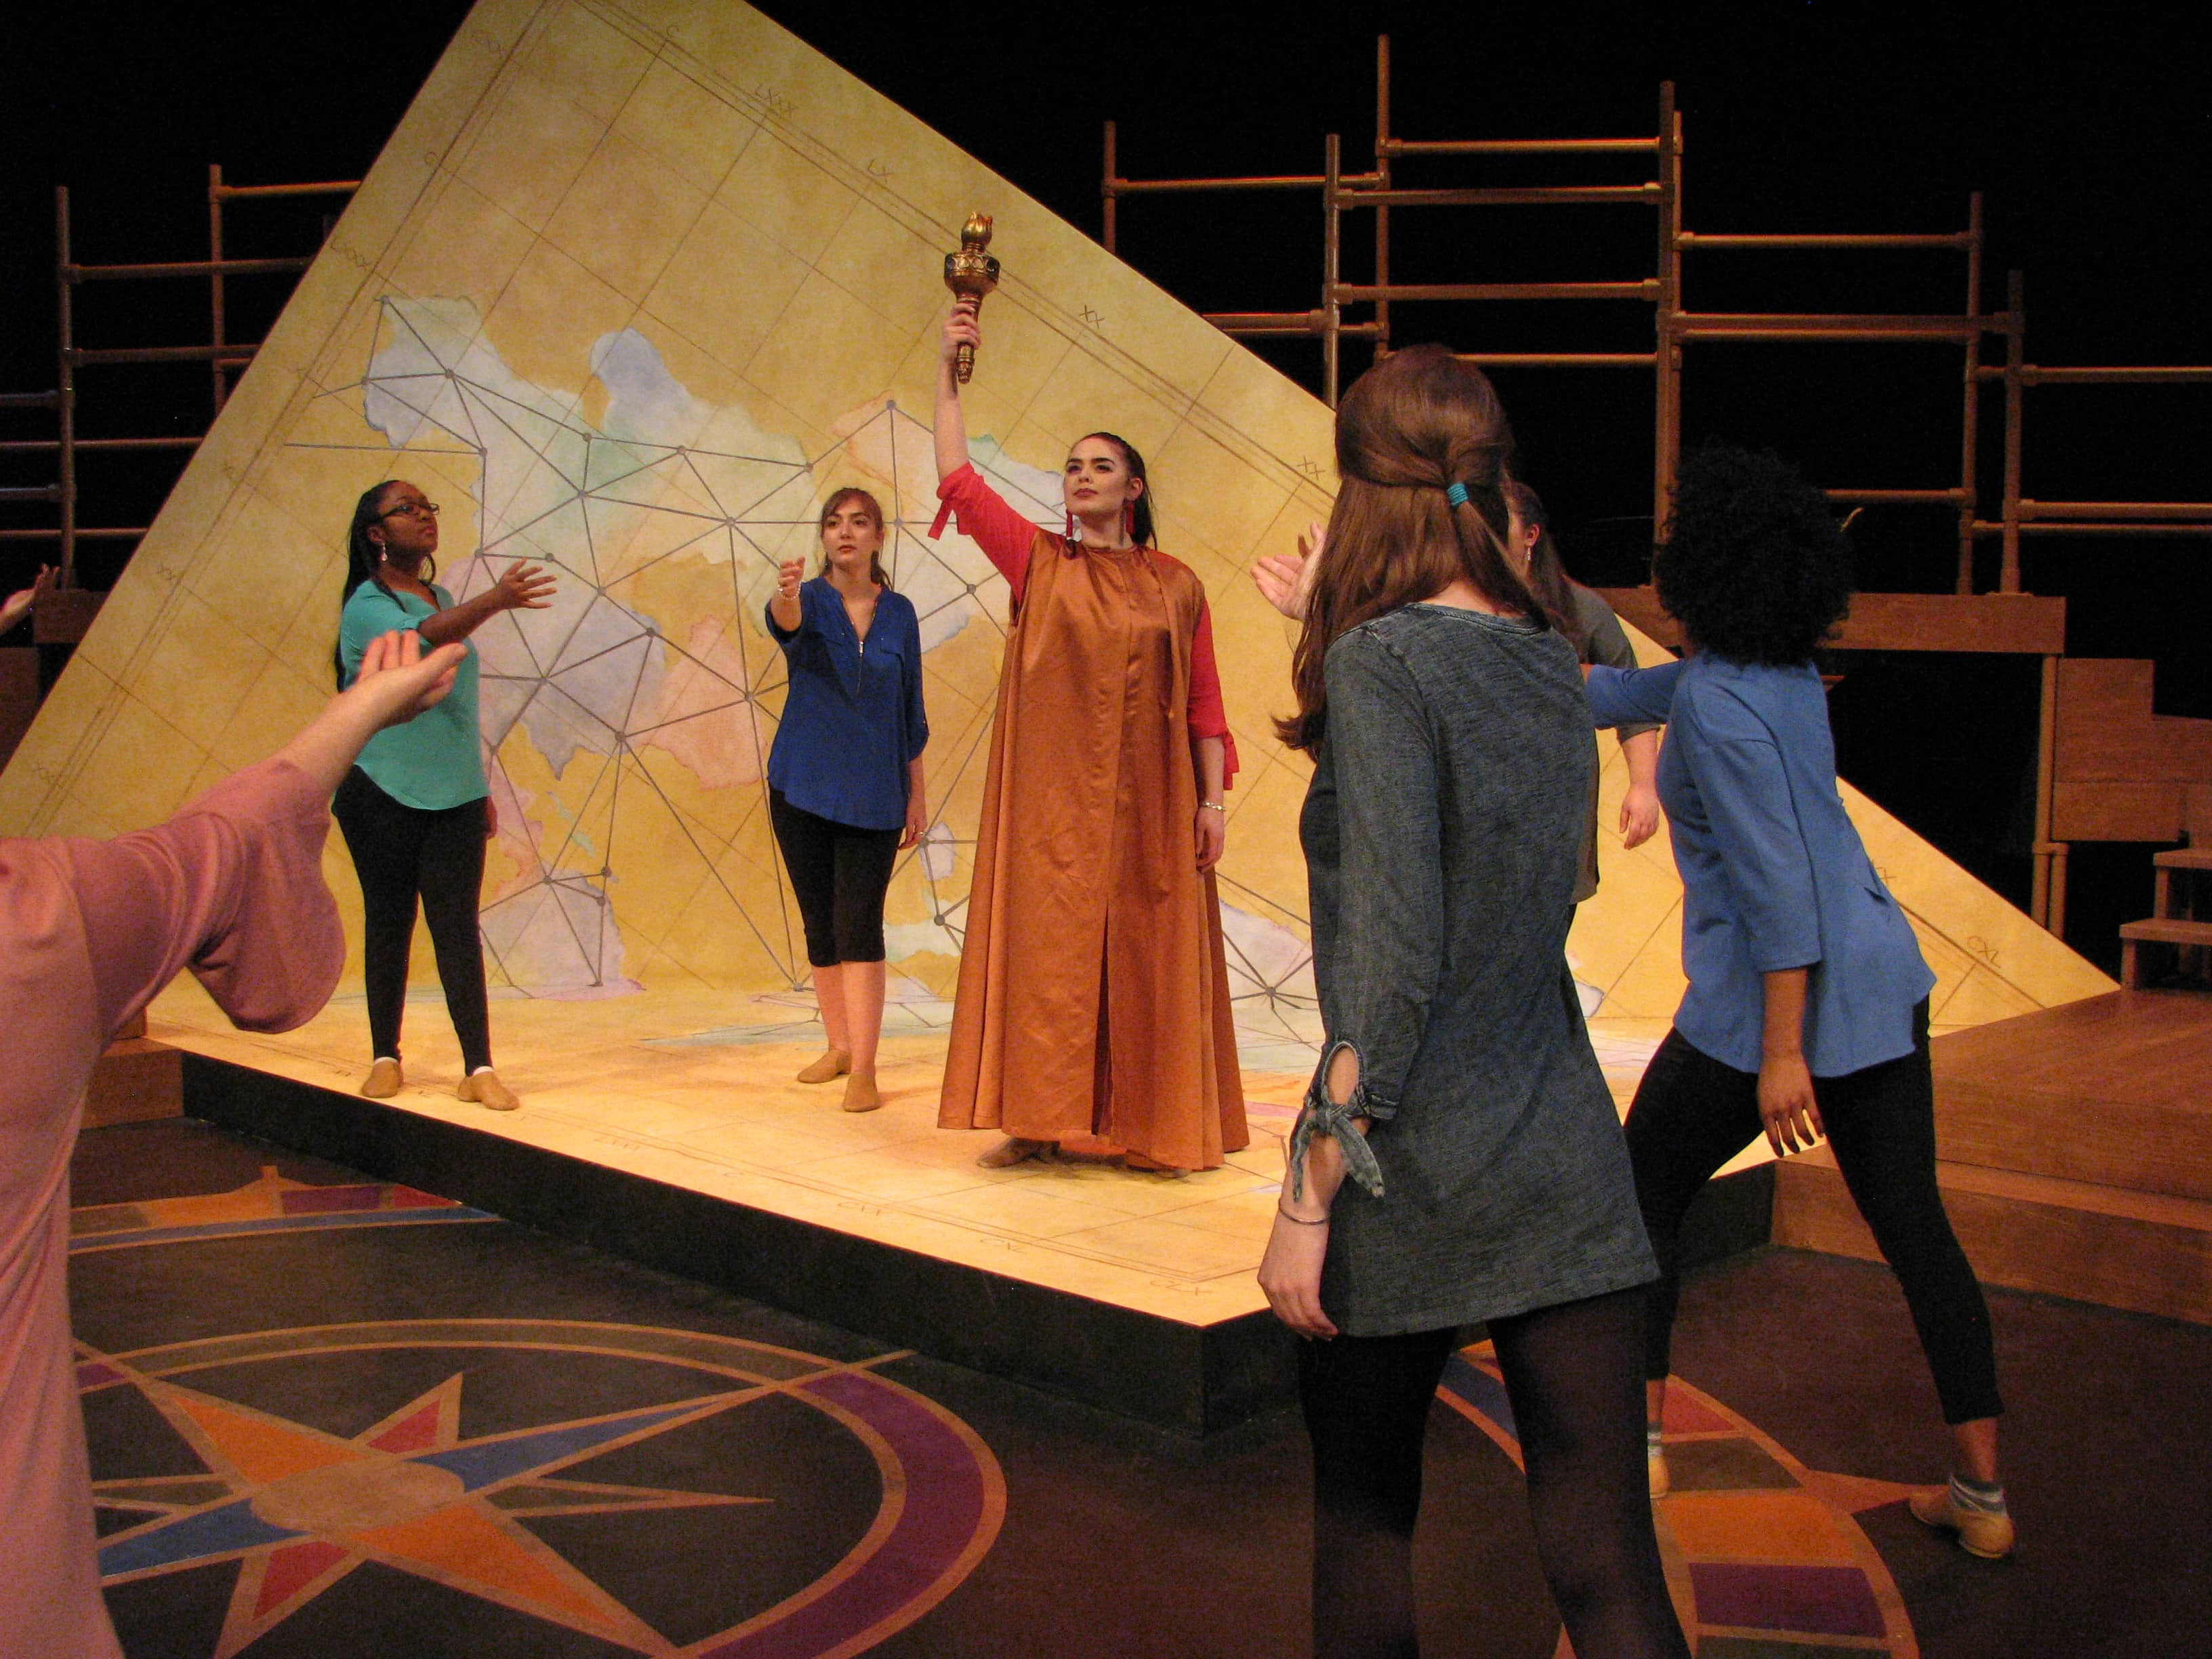 Migratory Tales, by Leslie Jacobson, played at George Washington University through April 1. Photo by Kirk Kristlibas.